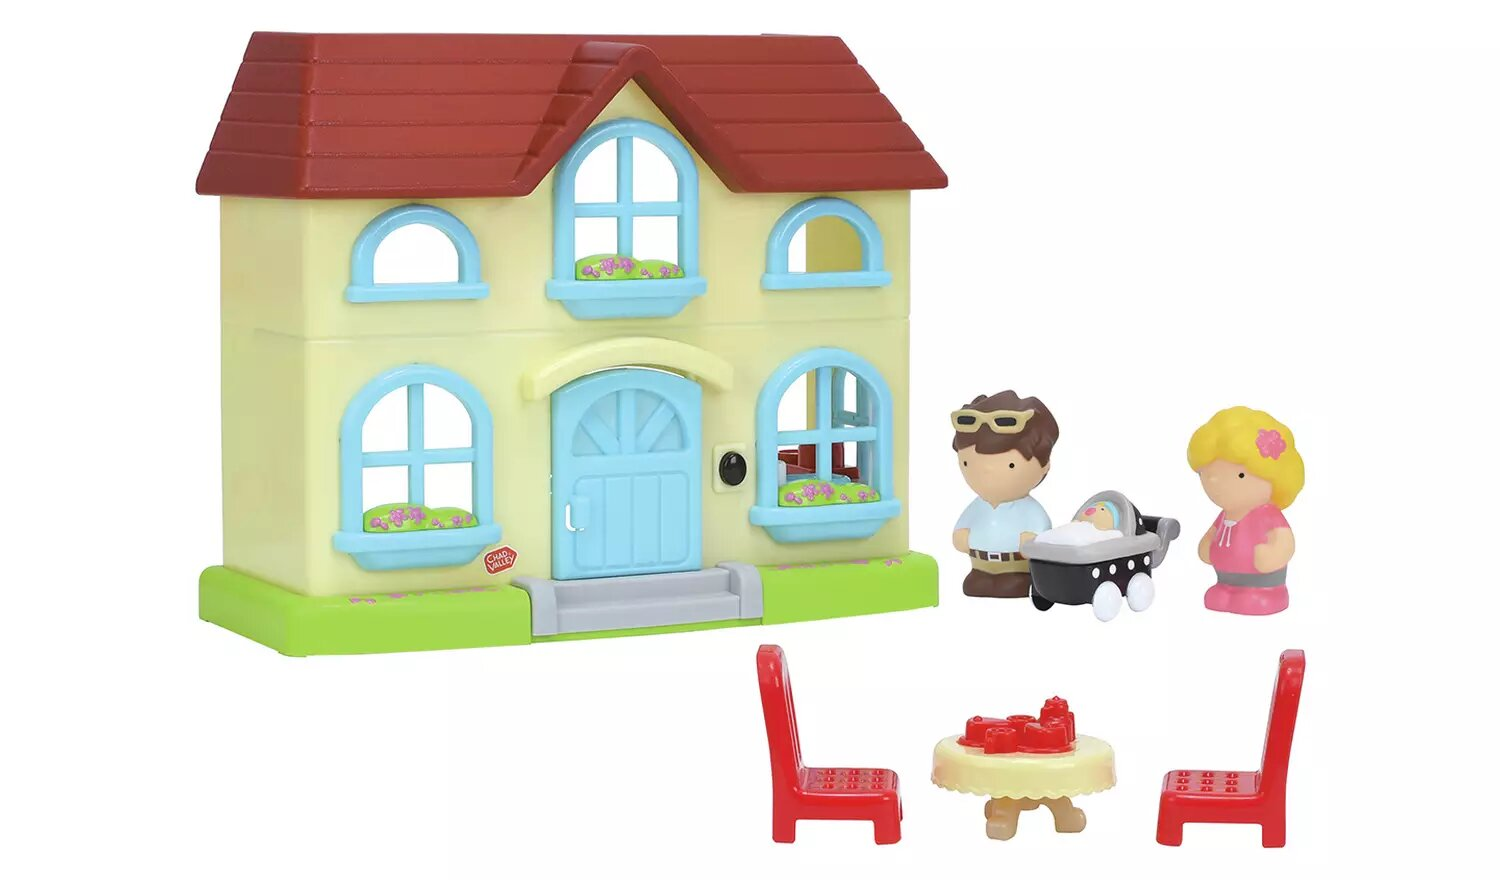 Tots Town Cottage Play Set, Chad Valley.